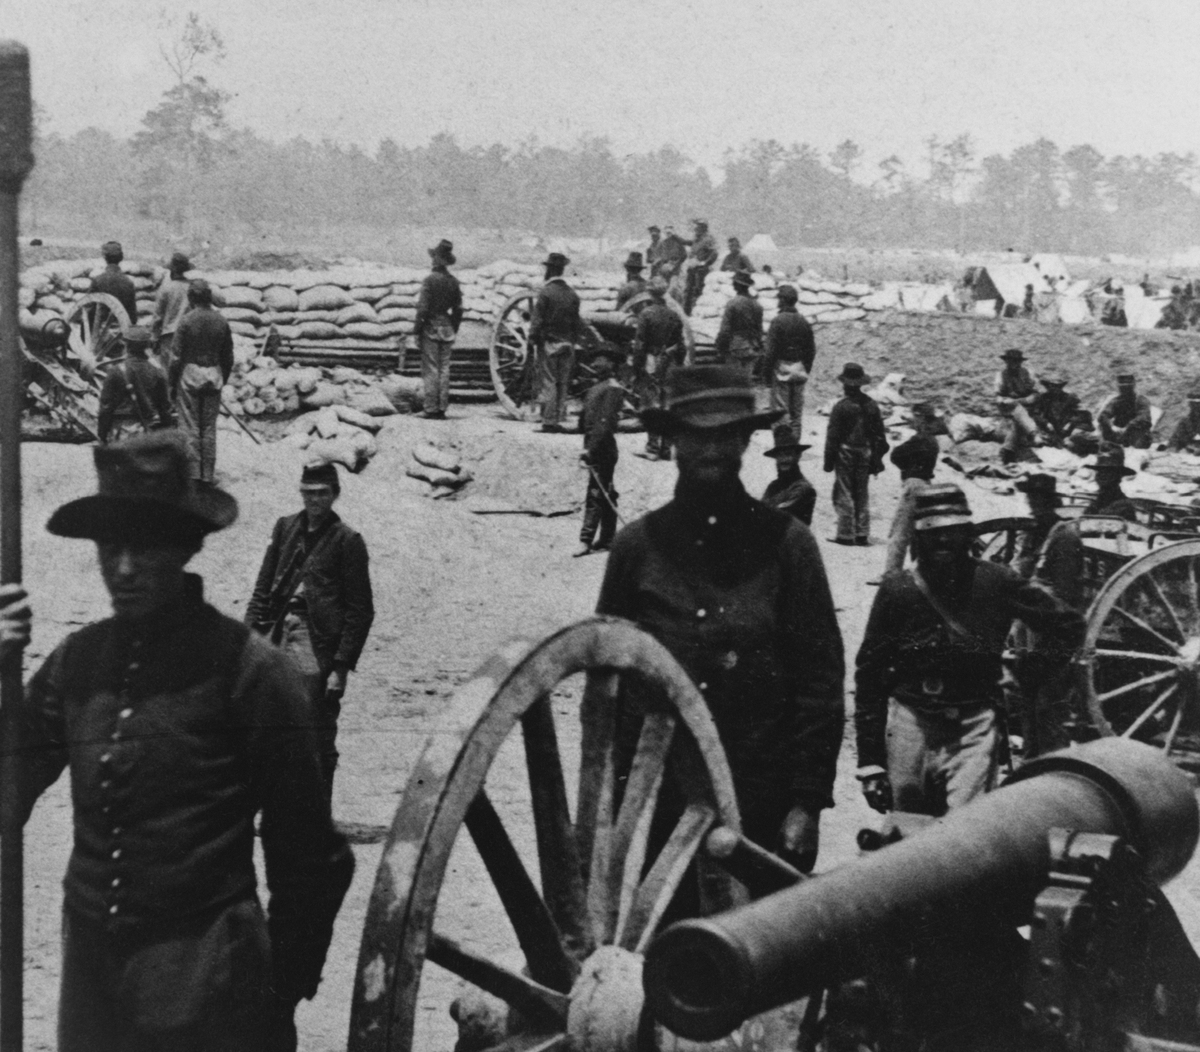 Union artillery at Fort Sumner near Susan Clark's House, Fair Oaks, Virginia on 1 June 1862.